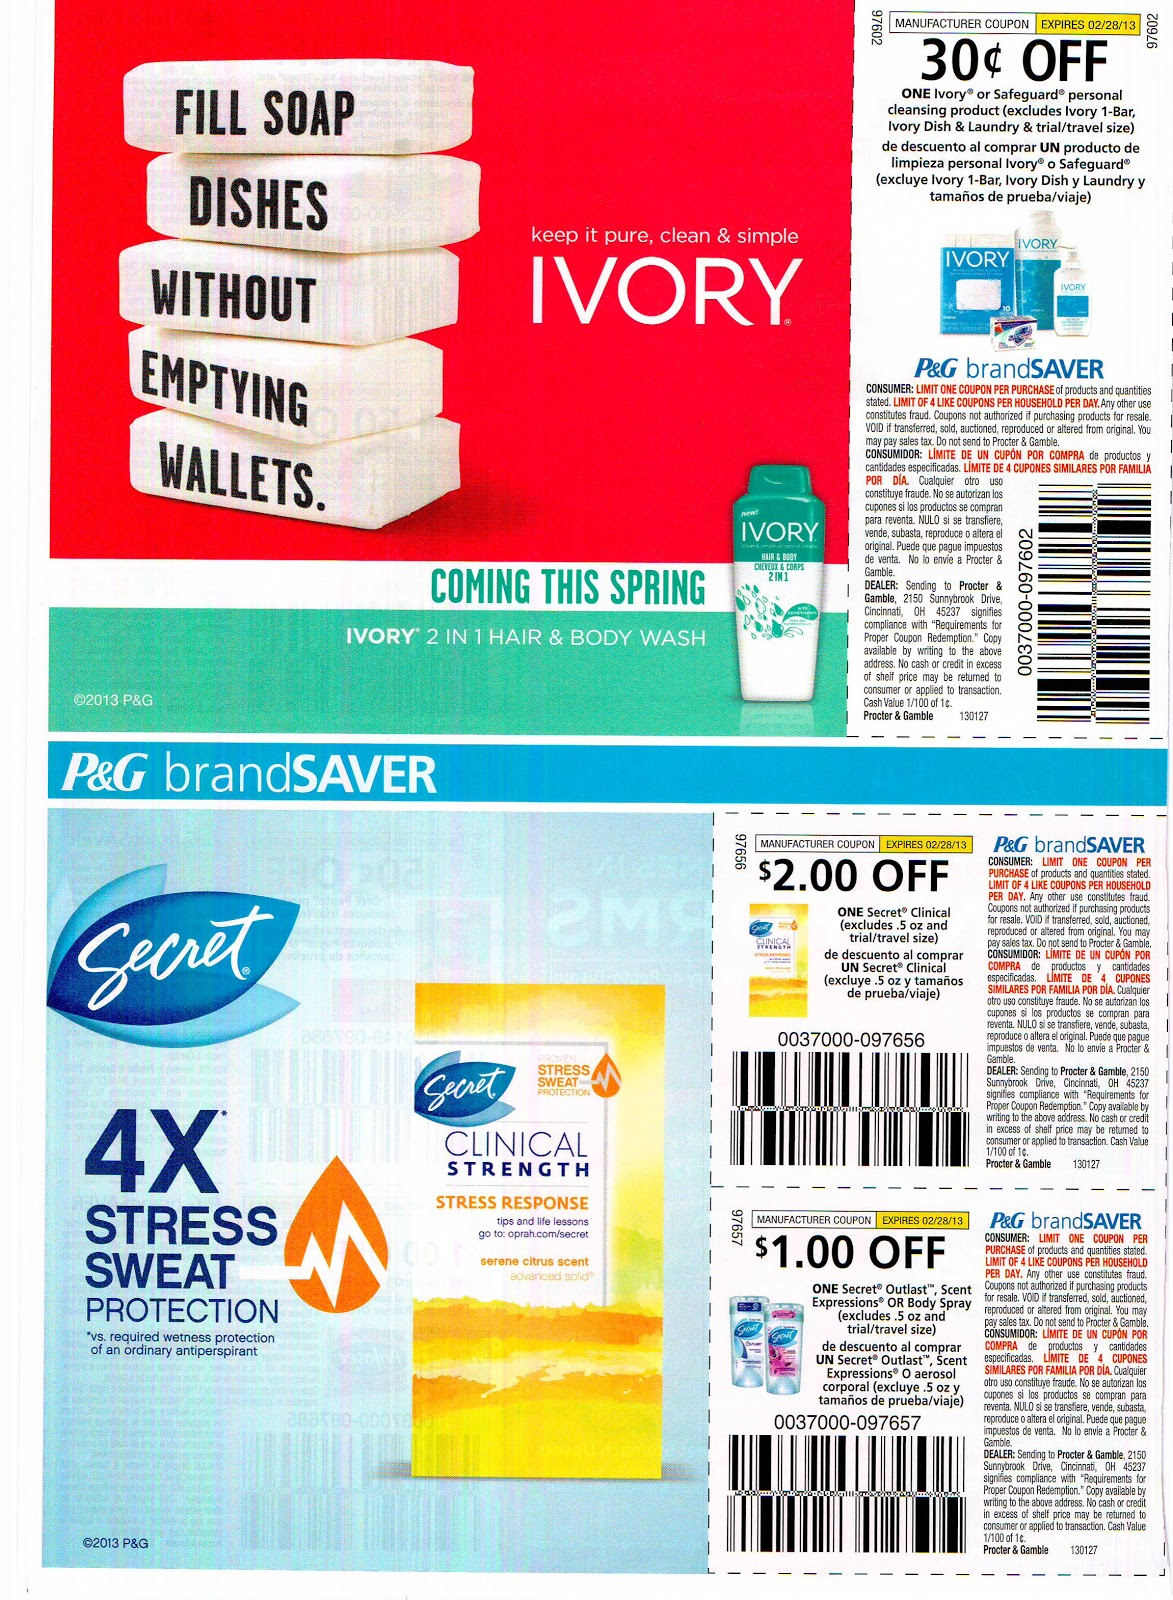 Proctor and gamble digital coupons